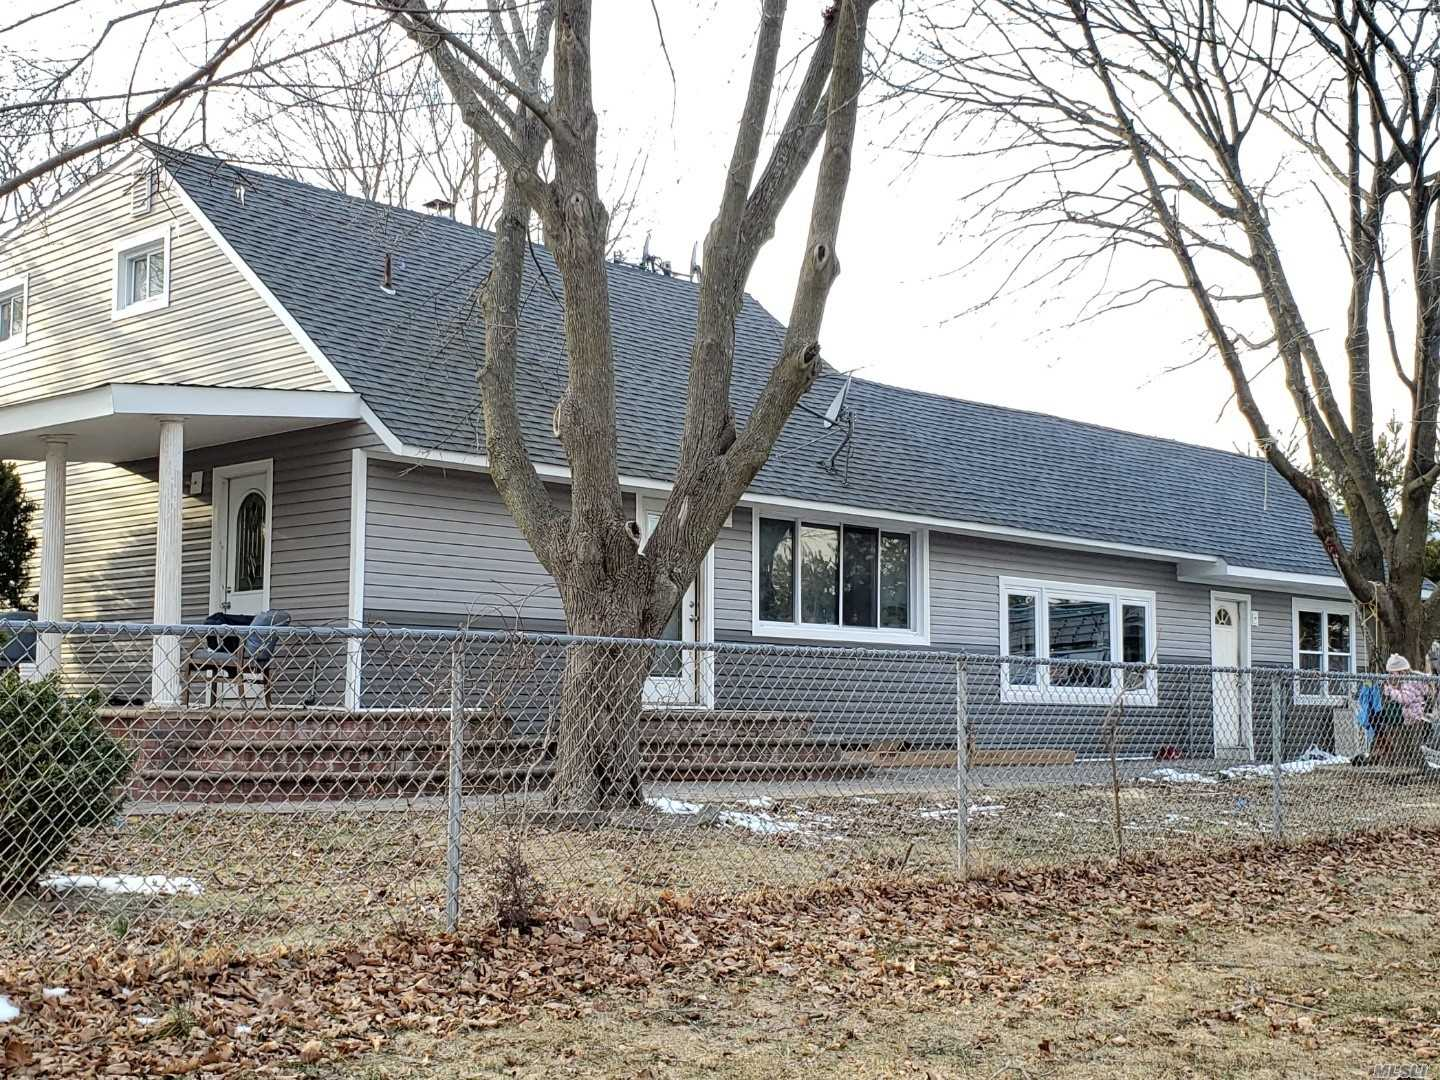 2 HOUSES IN ONE!! COME AND SEE IT 8 BEDS 4 F BATHS NICE LANDSCAPING SOLD AS IS GAS AND OIL MUCH MUCH MUCH...